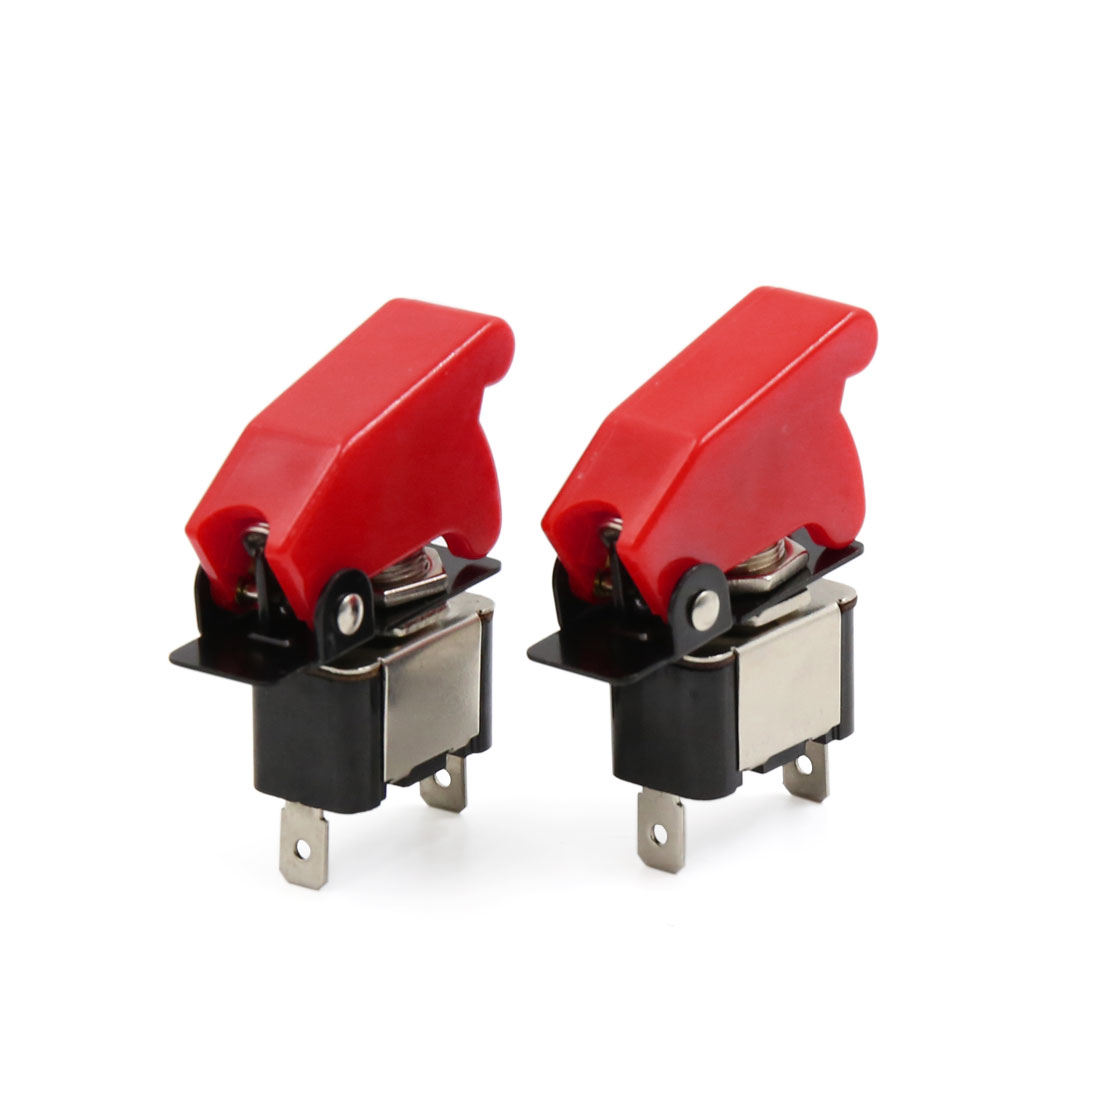 2pcs DC 12V 20A Red Cover Car ON/OFF SPST Light Rocker Toggle Control Switch